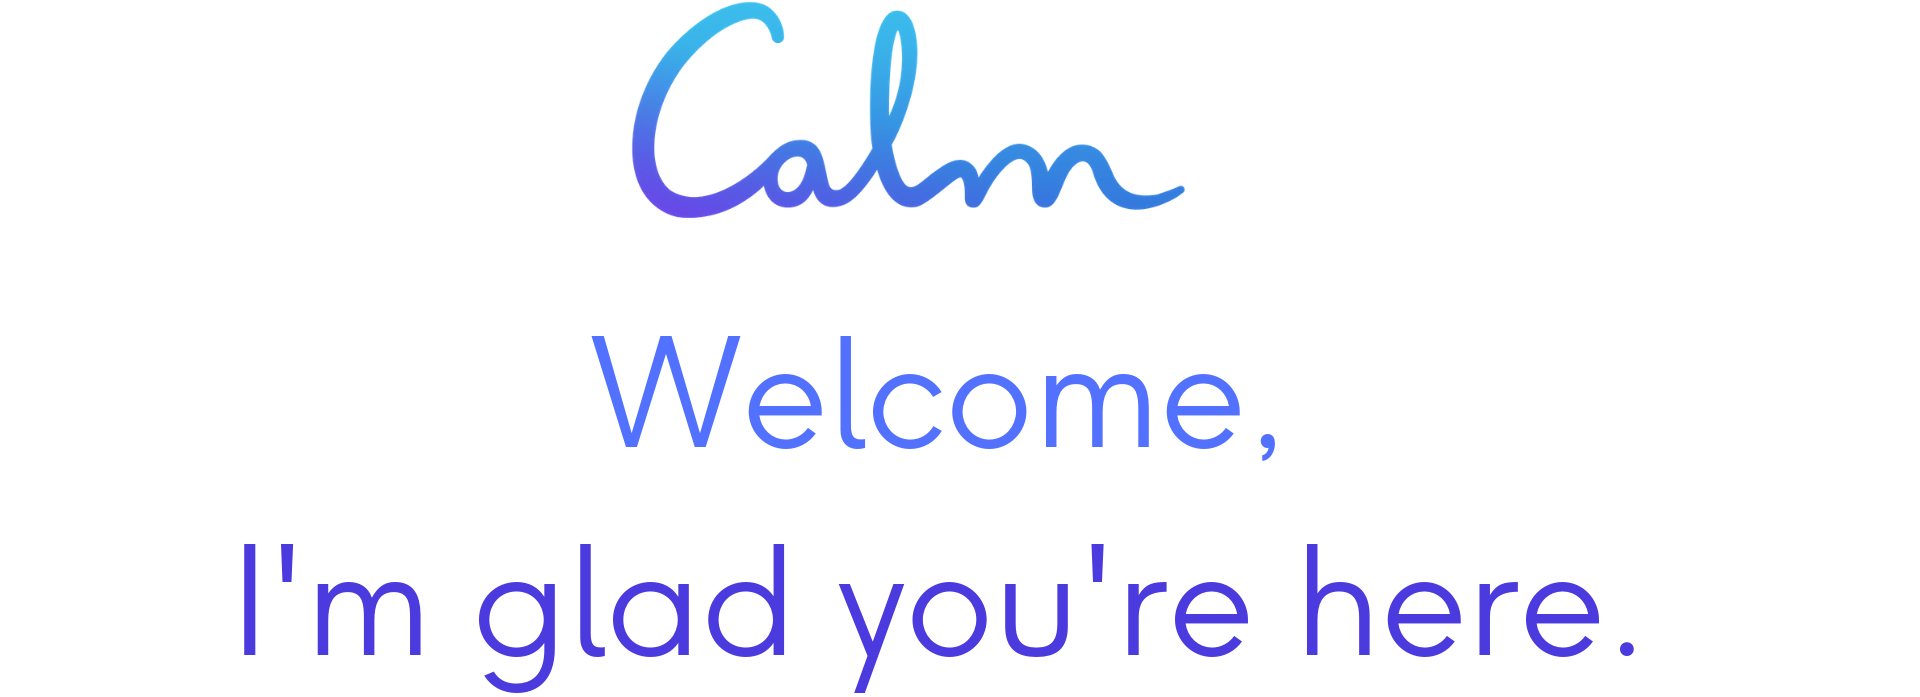 Copy of Welcome Calm.png